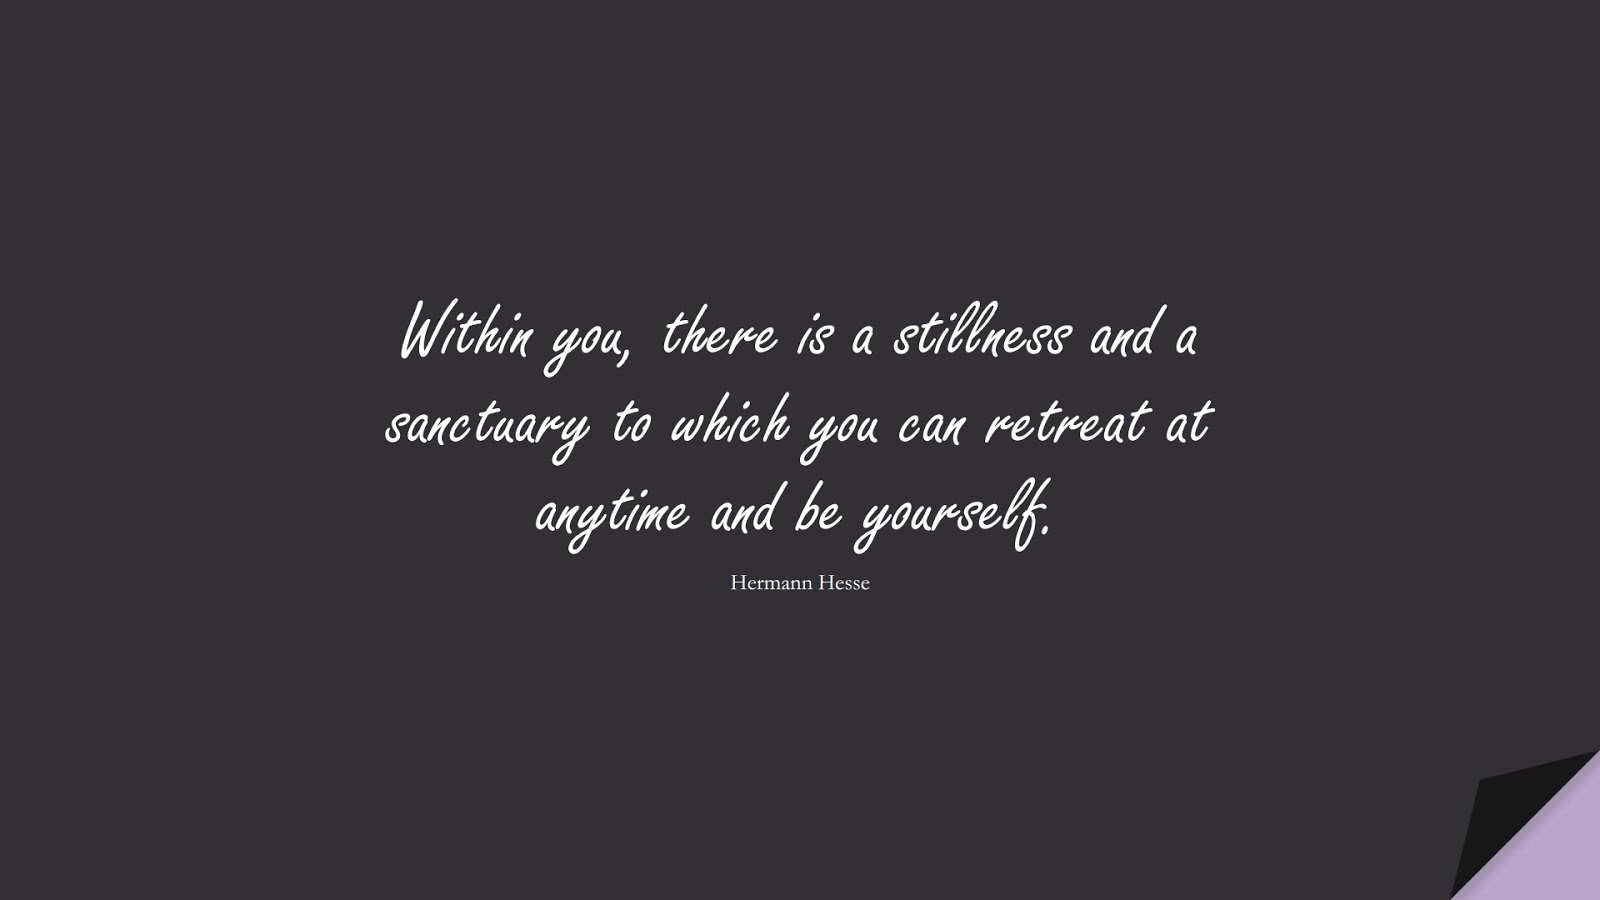 Within you, there is a stillness and a sanctuary to which you can retreat at anytime and be yourself. (Hermann Hesse);  #BeYourselfQuotes